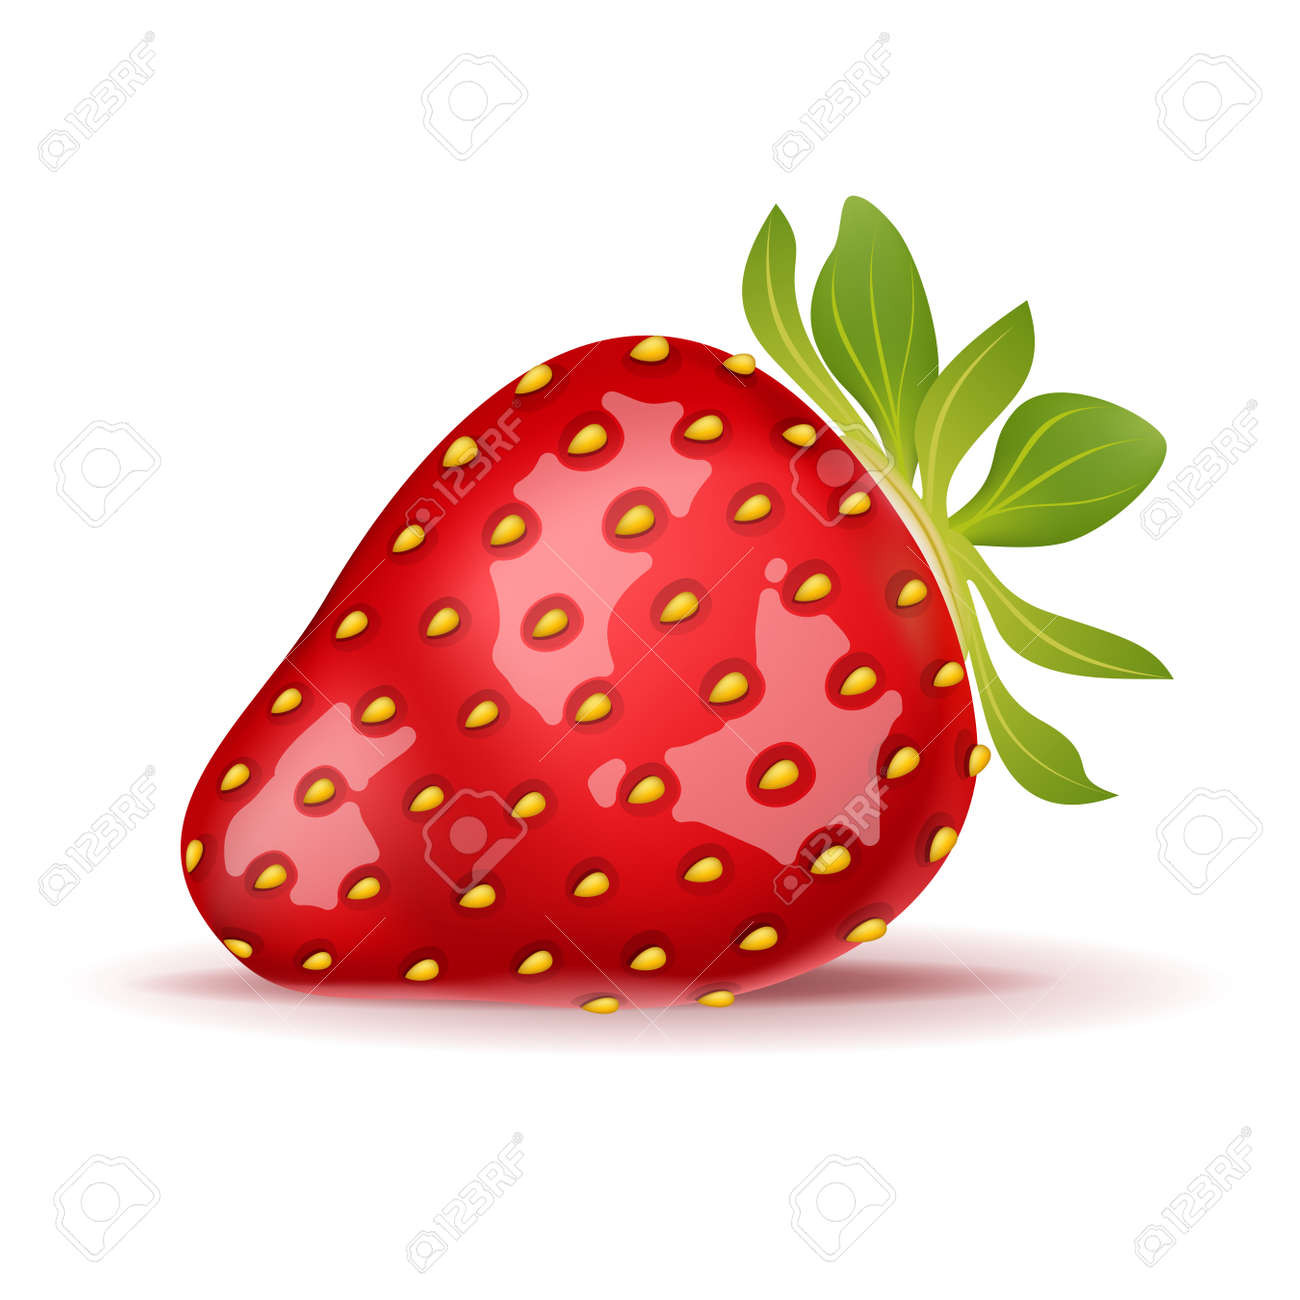 Ripe strawberry isolated on white. Vector illustration. - 167011051